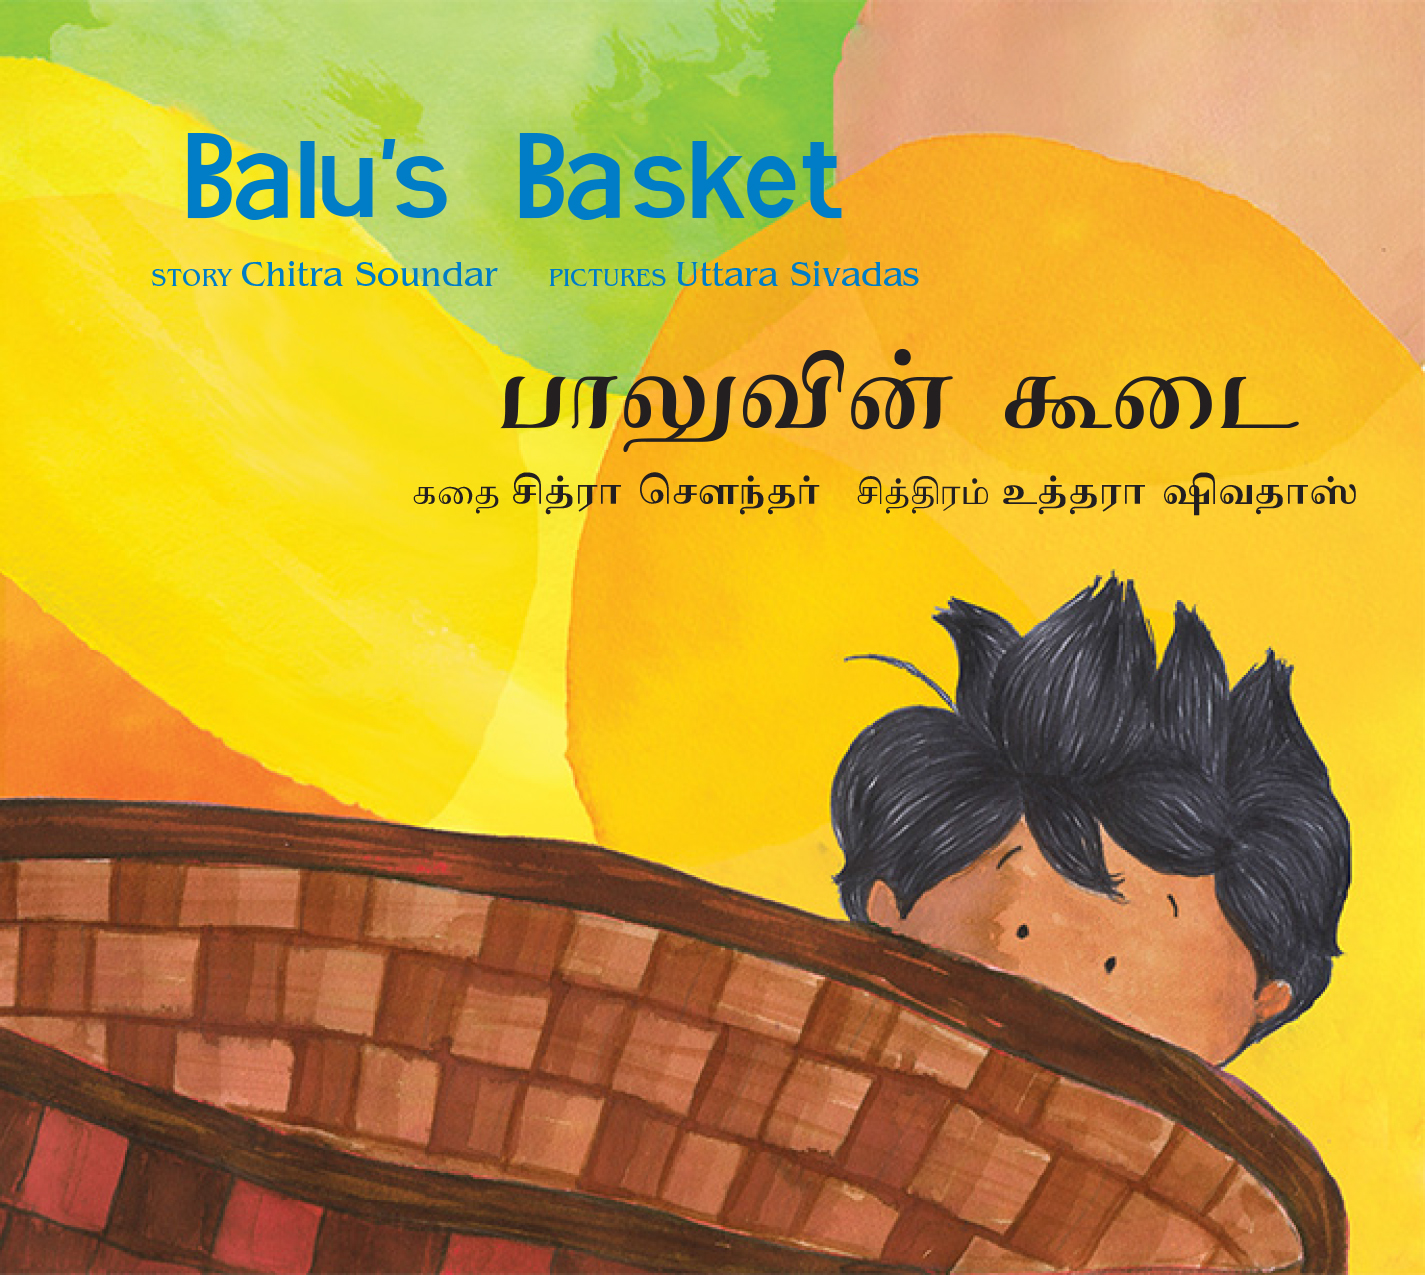 Balu's Basket, Tulika Books. A book filled with fruits from India